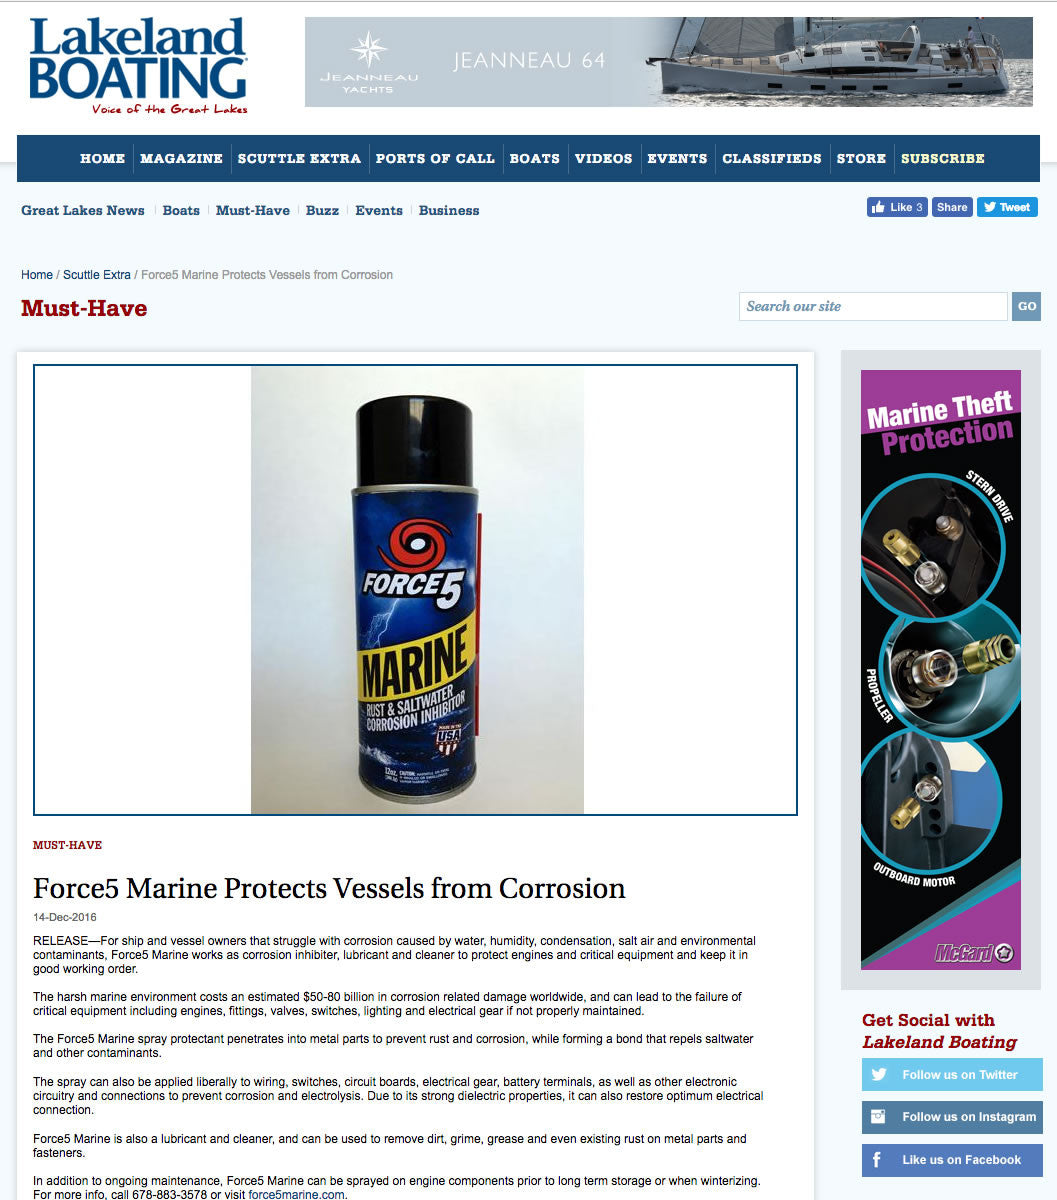 Force5 Marine Protects Vessels from Corrosion